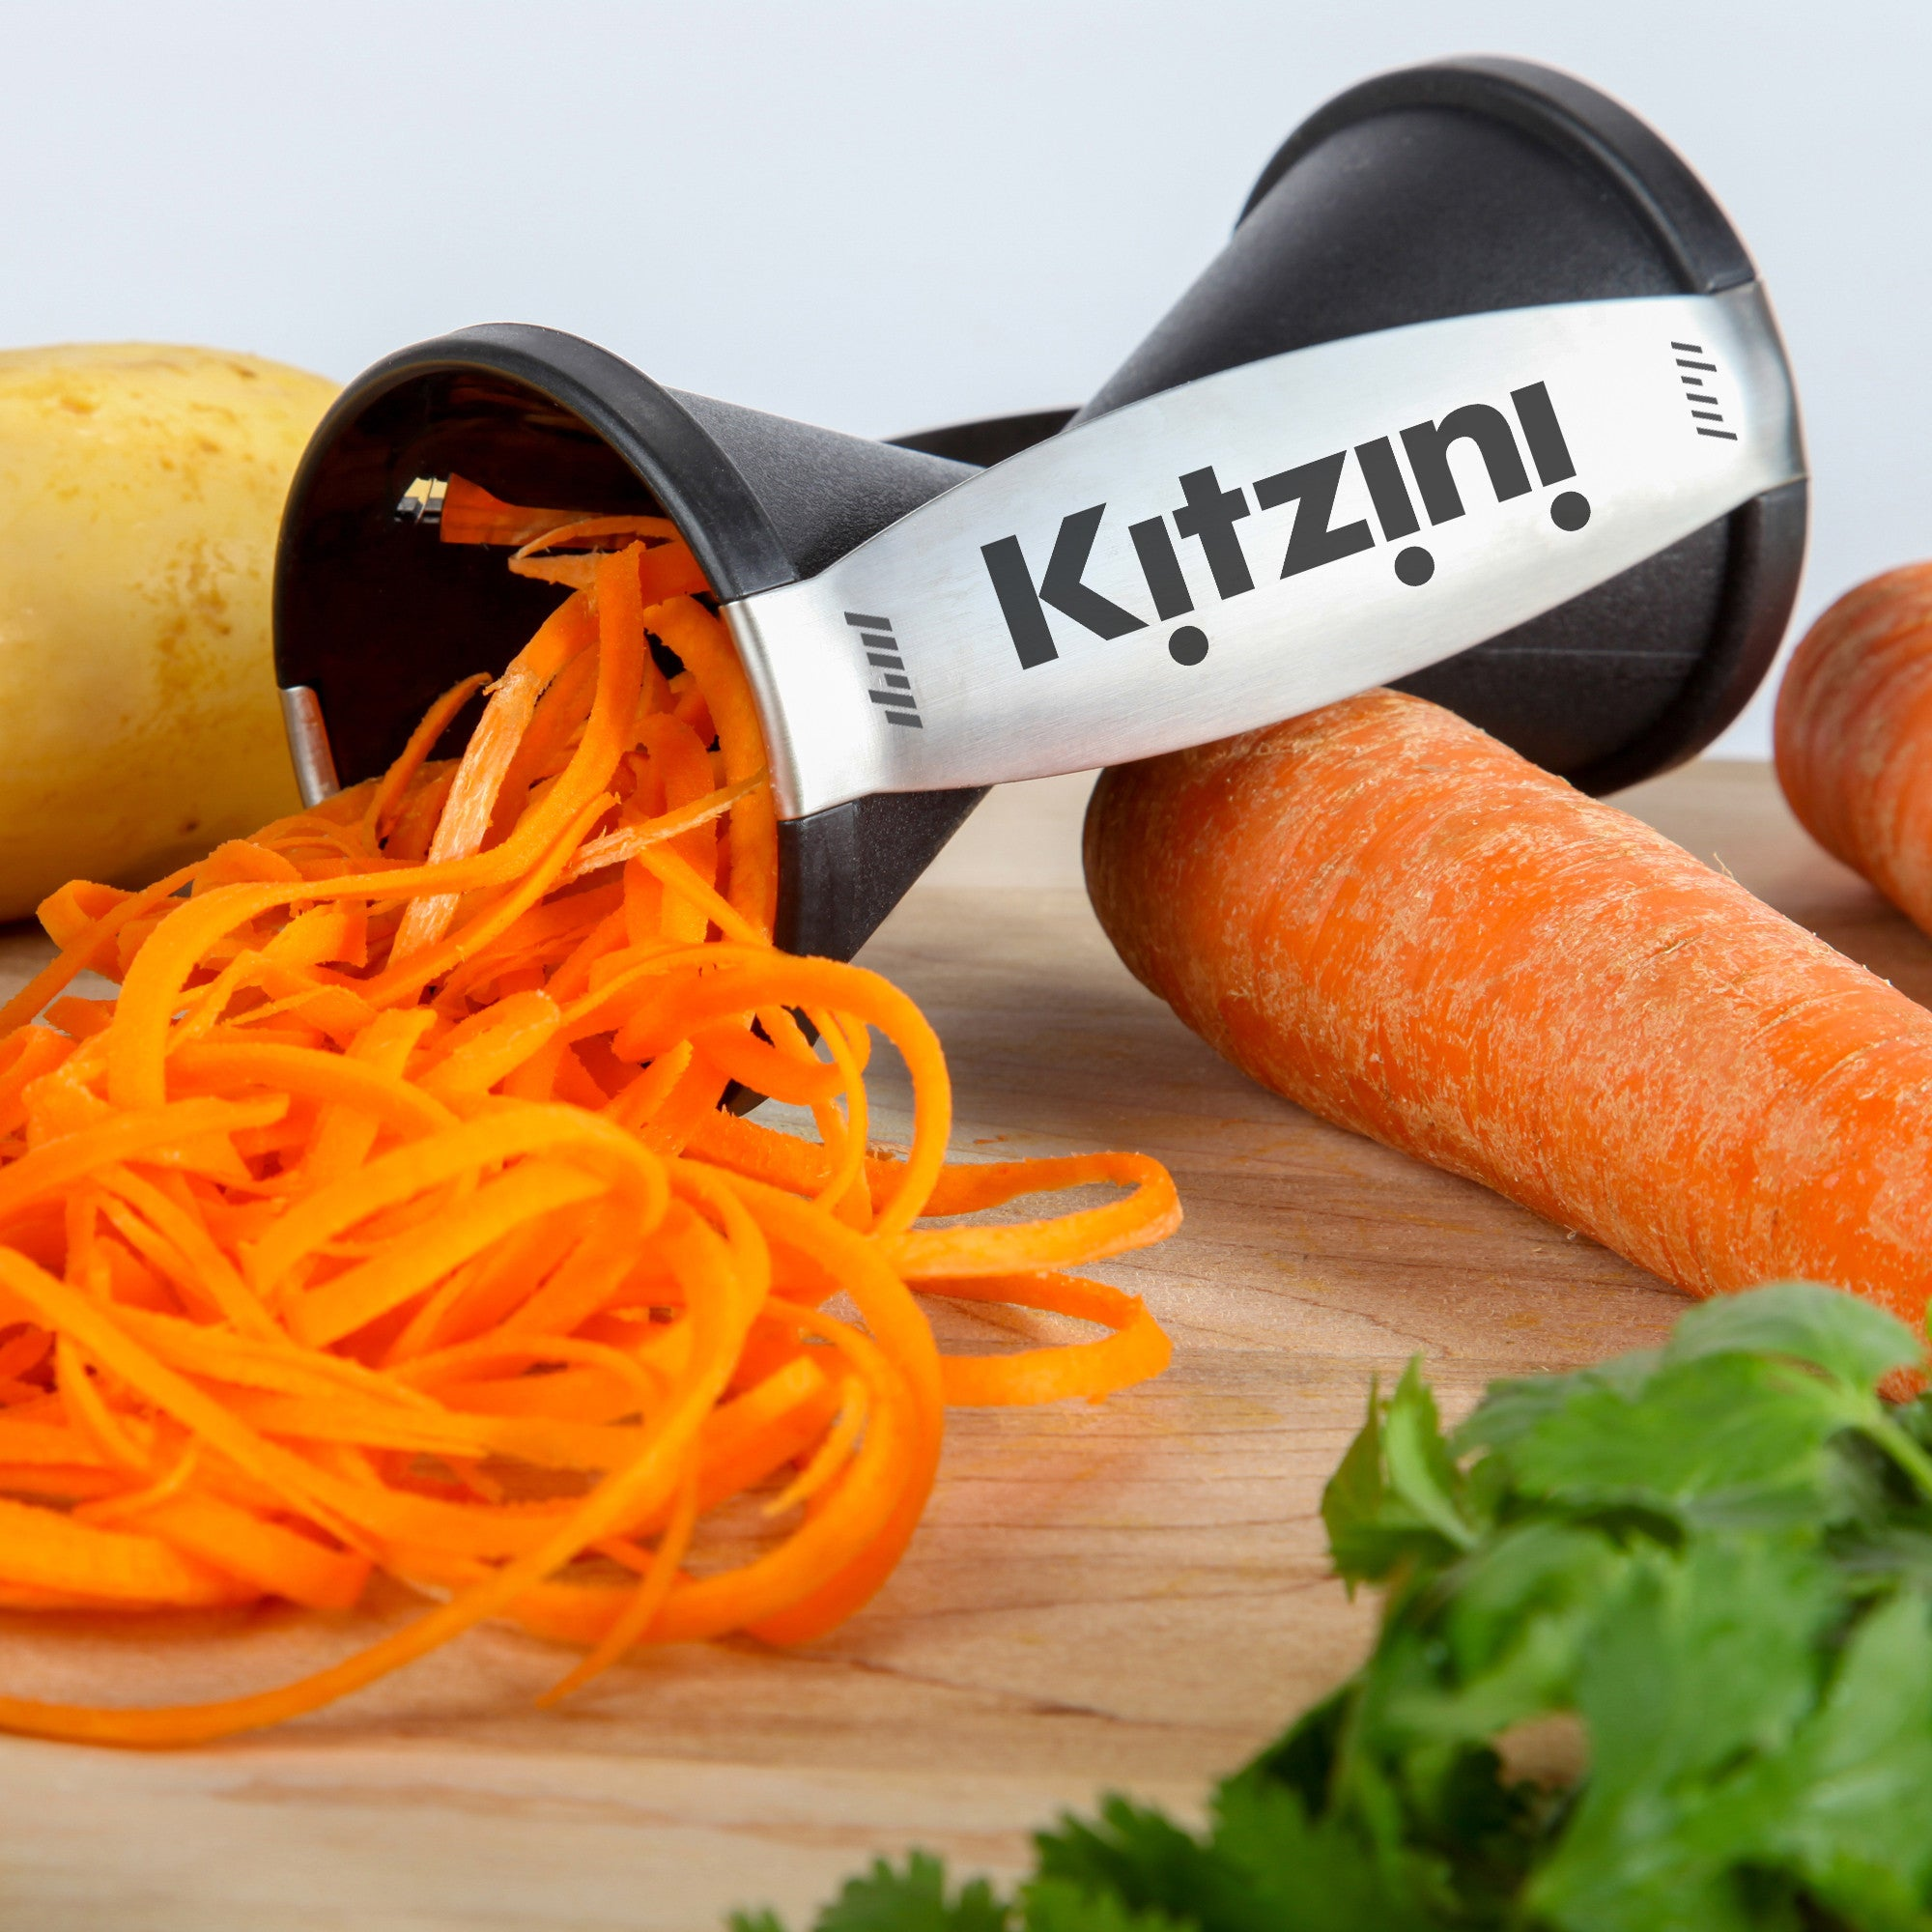 Kitzini Vegetable Spiralizer